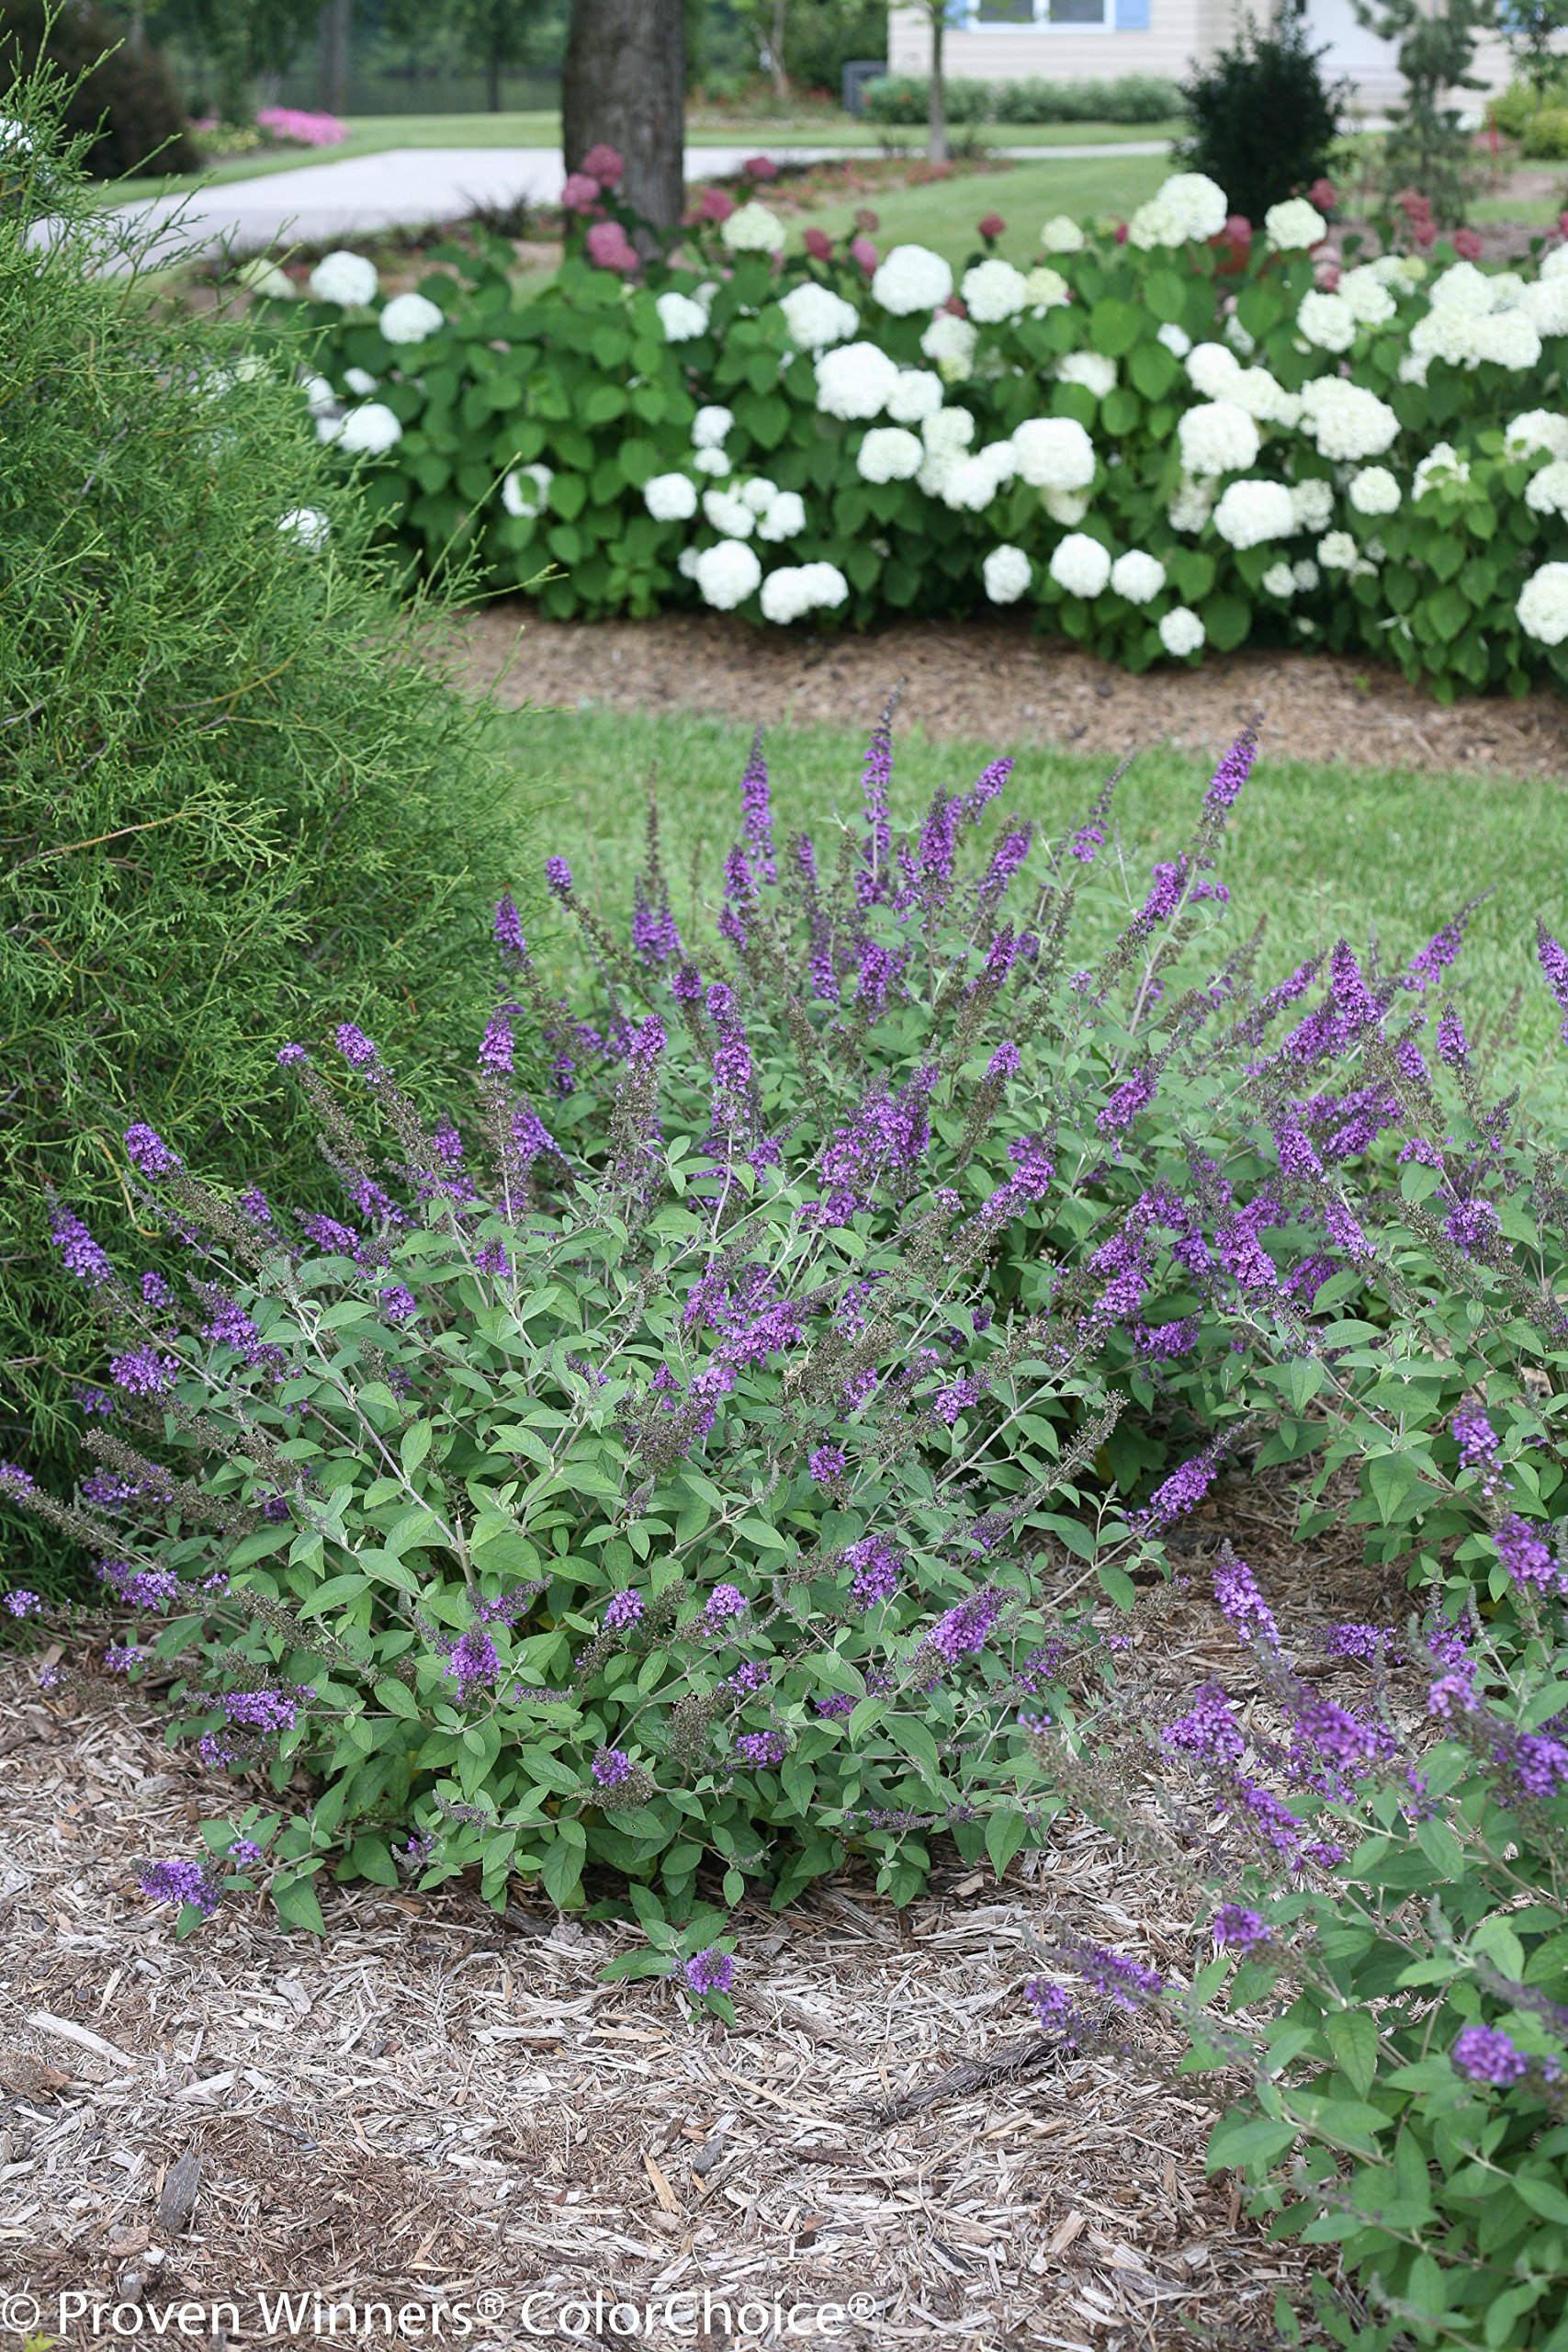 1 Gal. Lo & Behold 'Blue Chip Jr.' Butterfly Bush (Buddleia) Live Shrub, Blue-Purple Flowers by Proven Winners (Image #6)